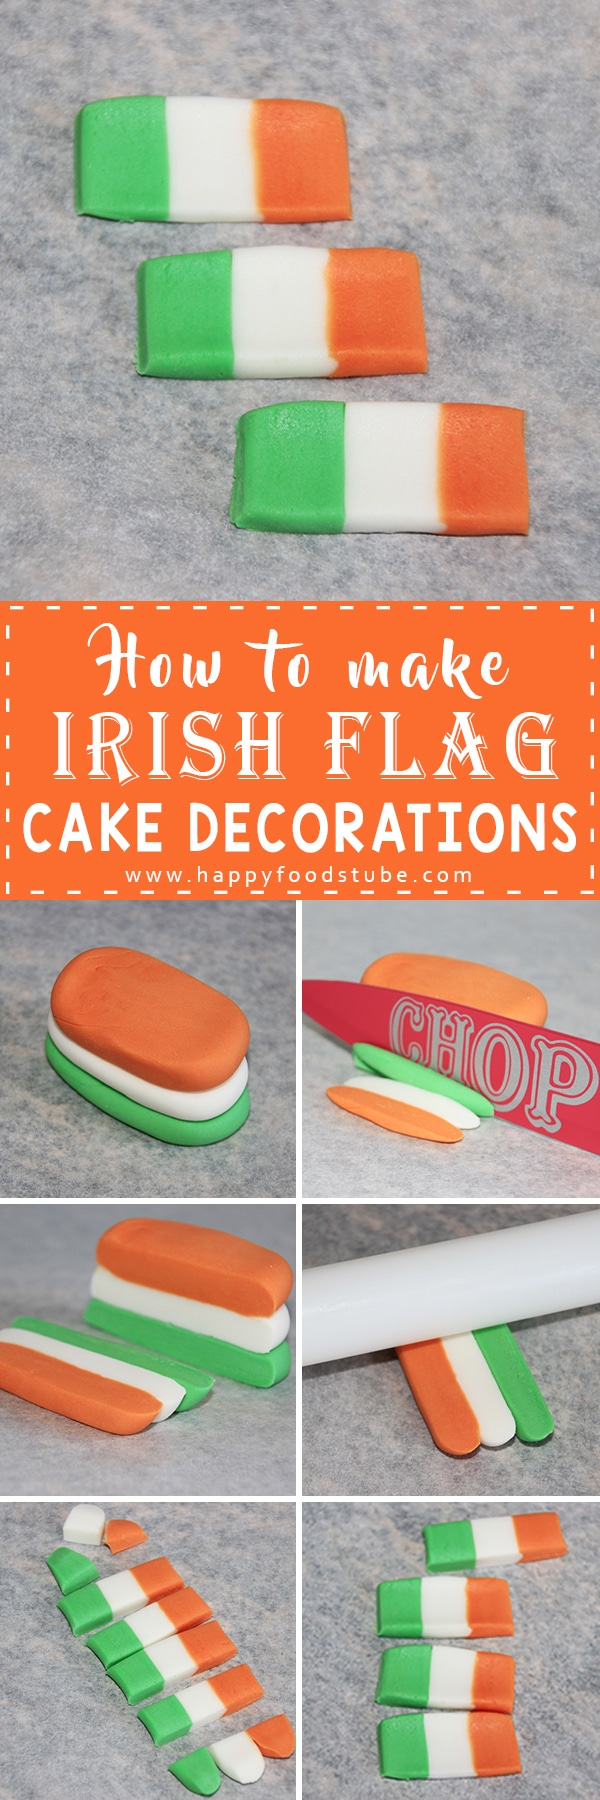 How to make Irish Flag Cake Decorations Tutorial